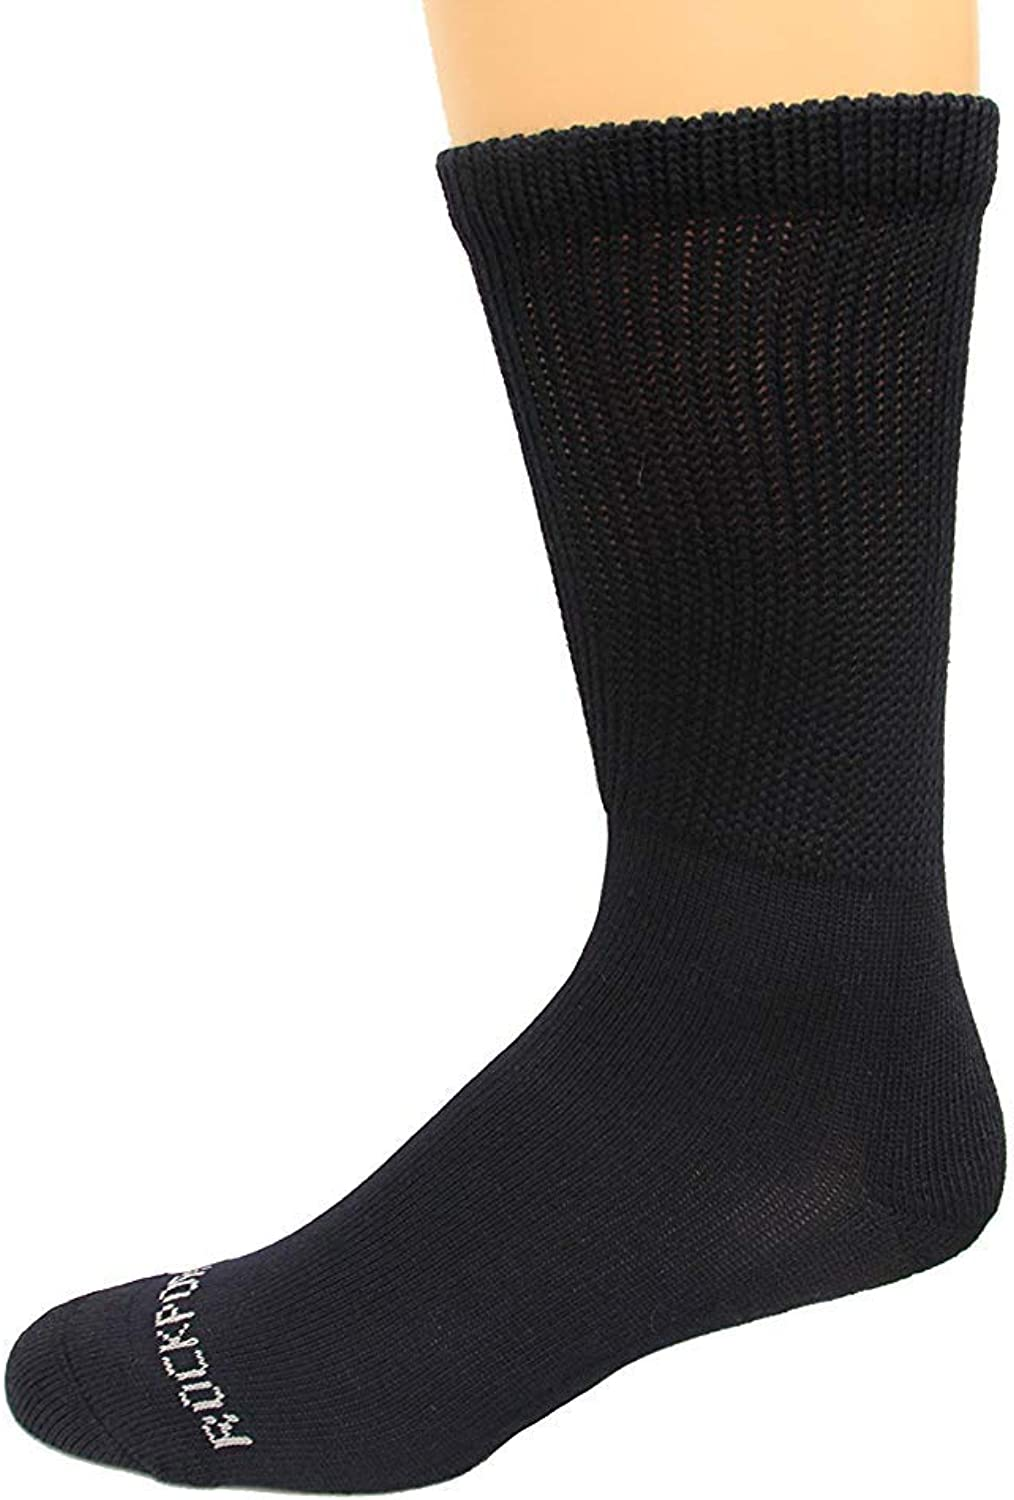 Rockport Men's Diabetic Crew Socks 1 Pair, Men's Shoe Size: 8-12